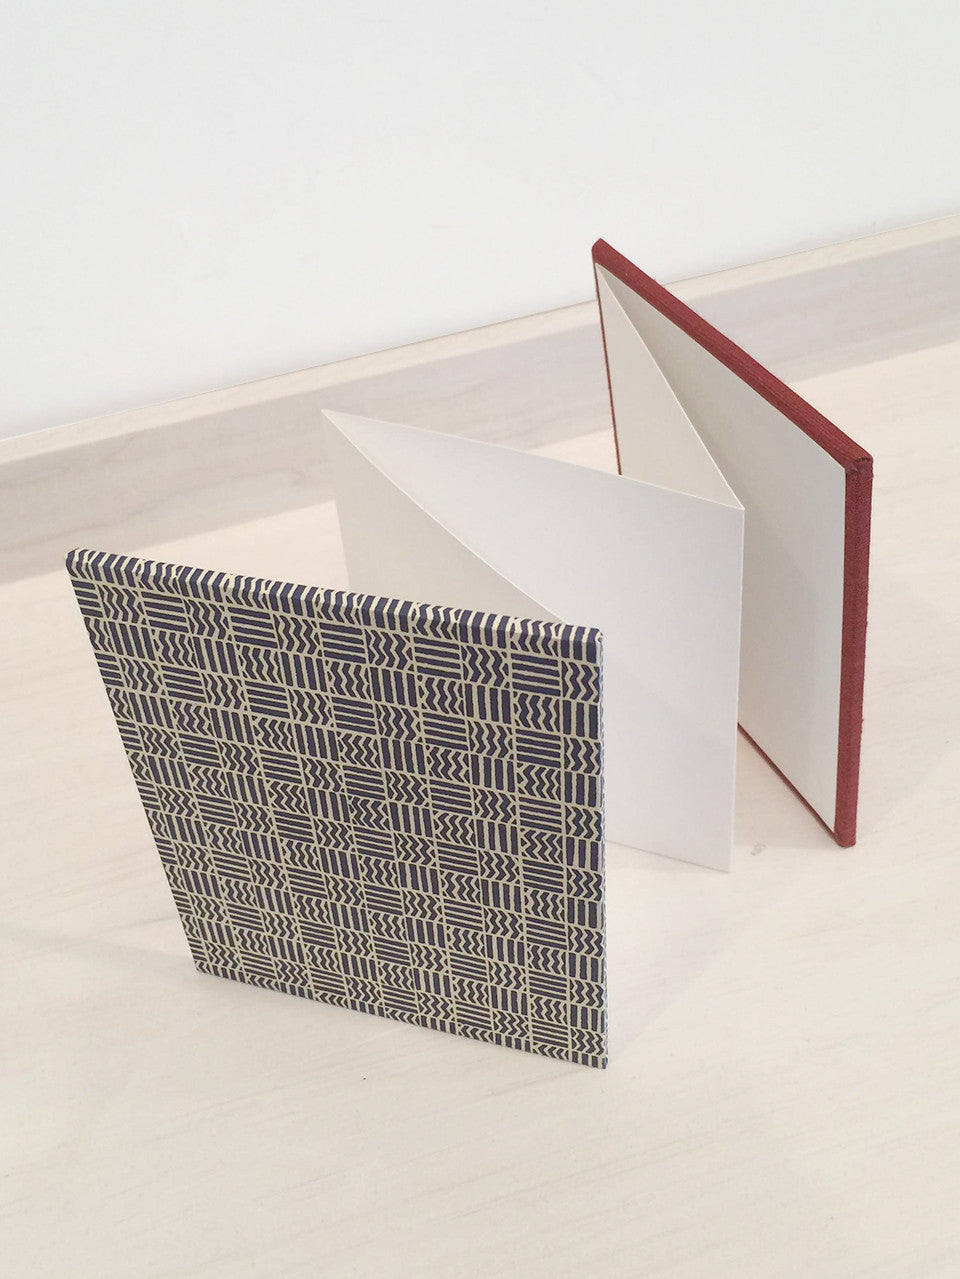 BOOKBINDING: Accordion